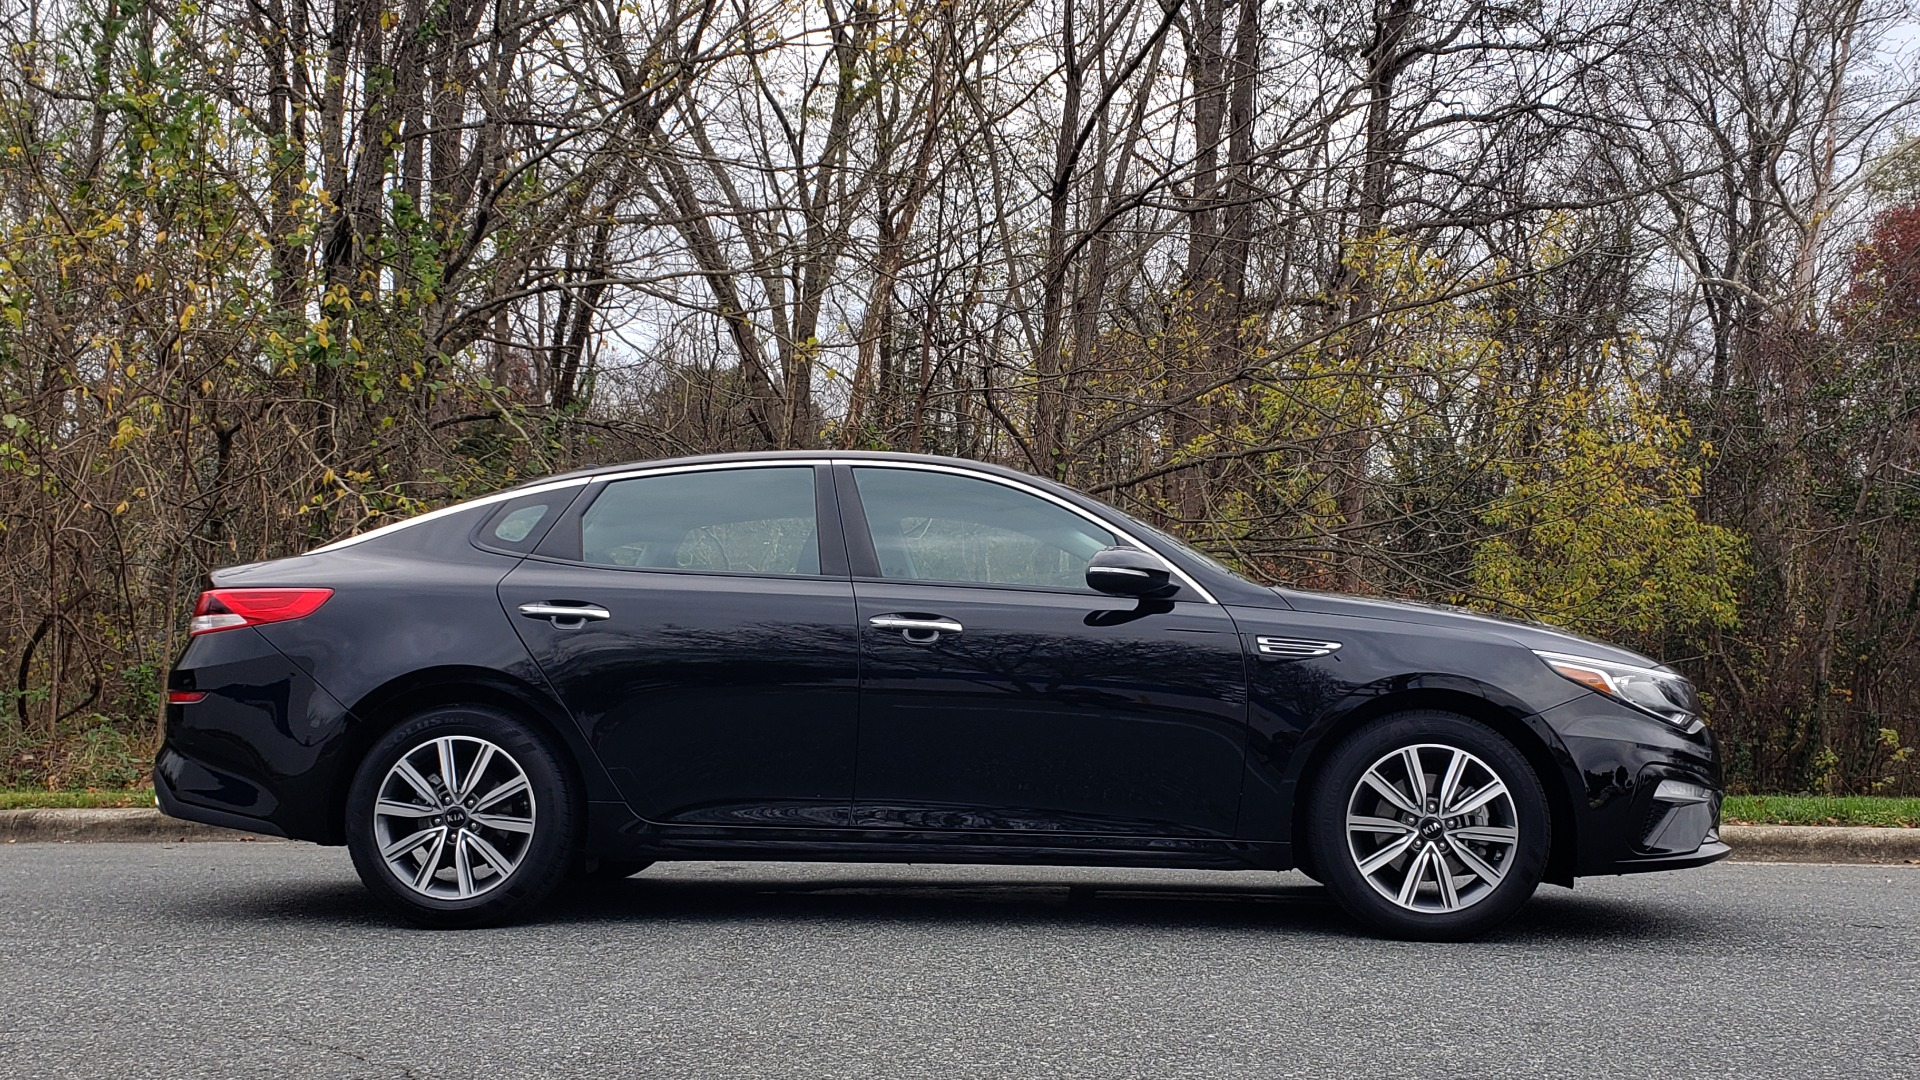 Used 2019 Kia OPTIMA LX AUTO / 2.4L 4-CYL / 6-SPD AUTO / REARVIEW / LOW MILES for sale $17,995 at Formula Imports in Charlotte NC 28227 5